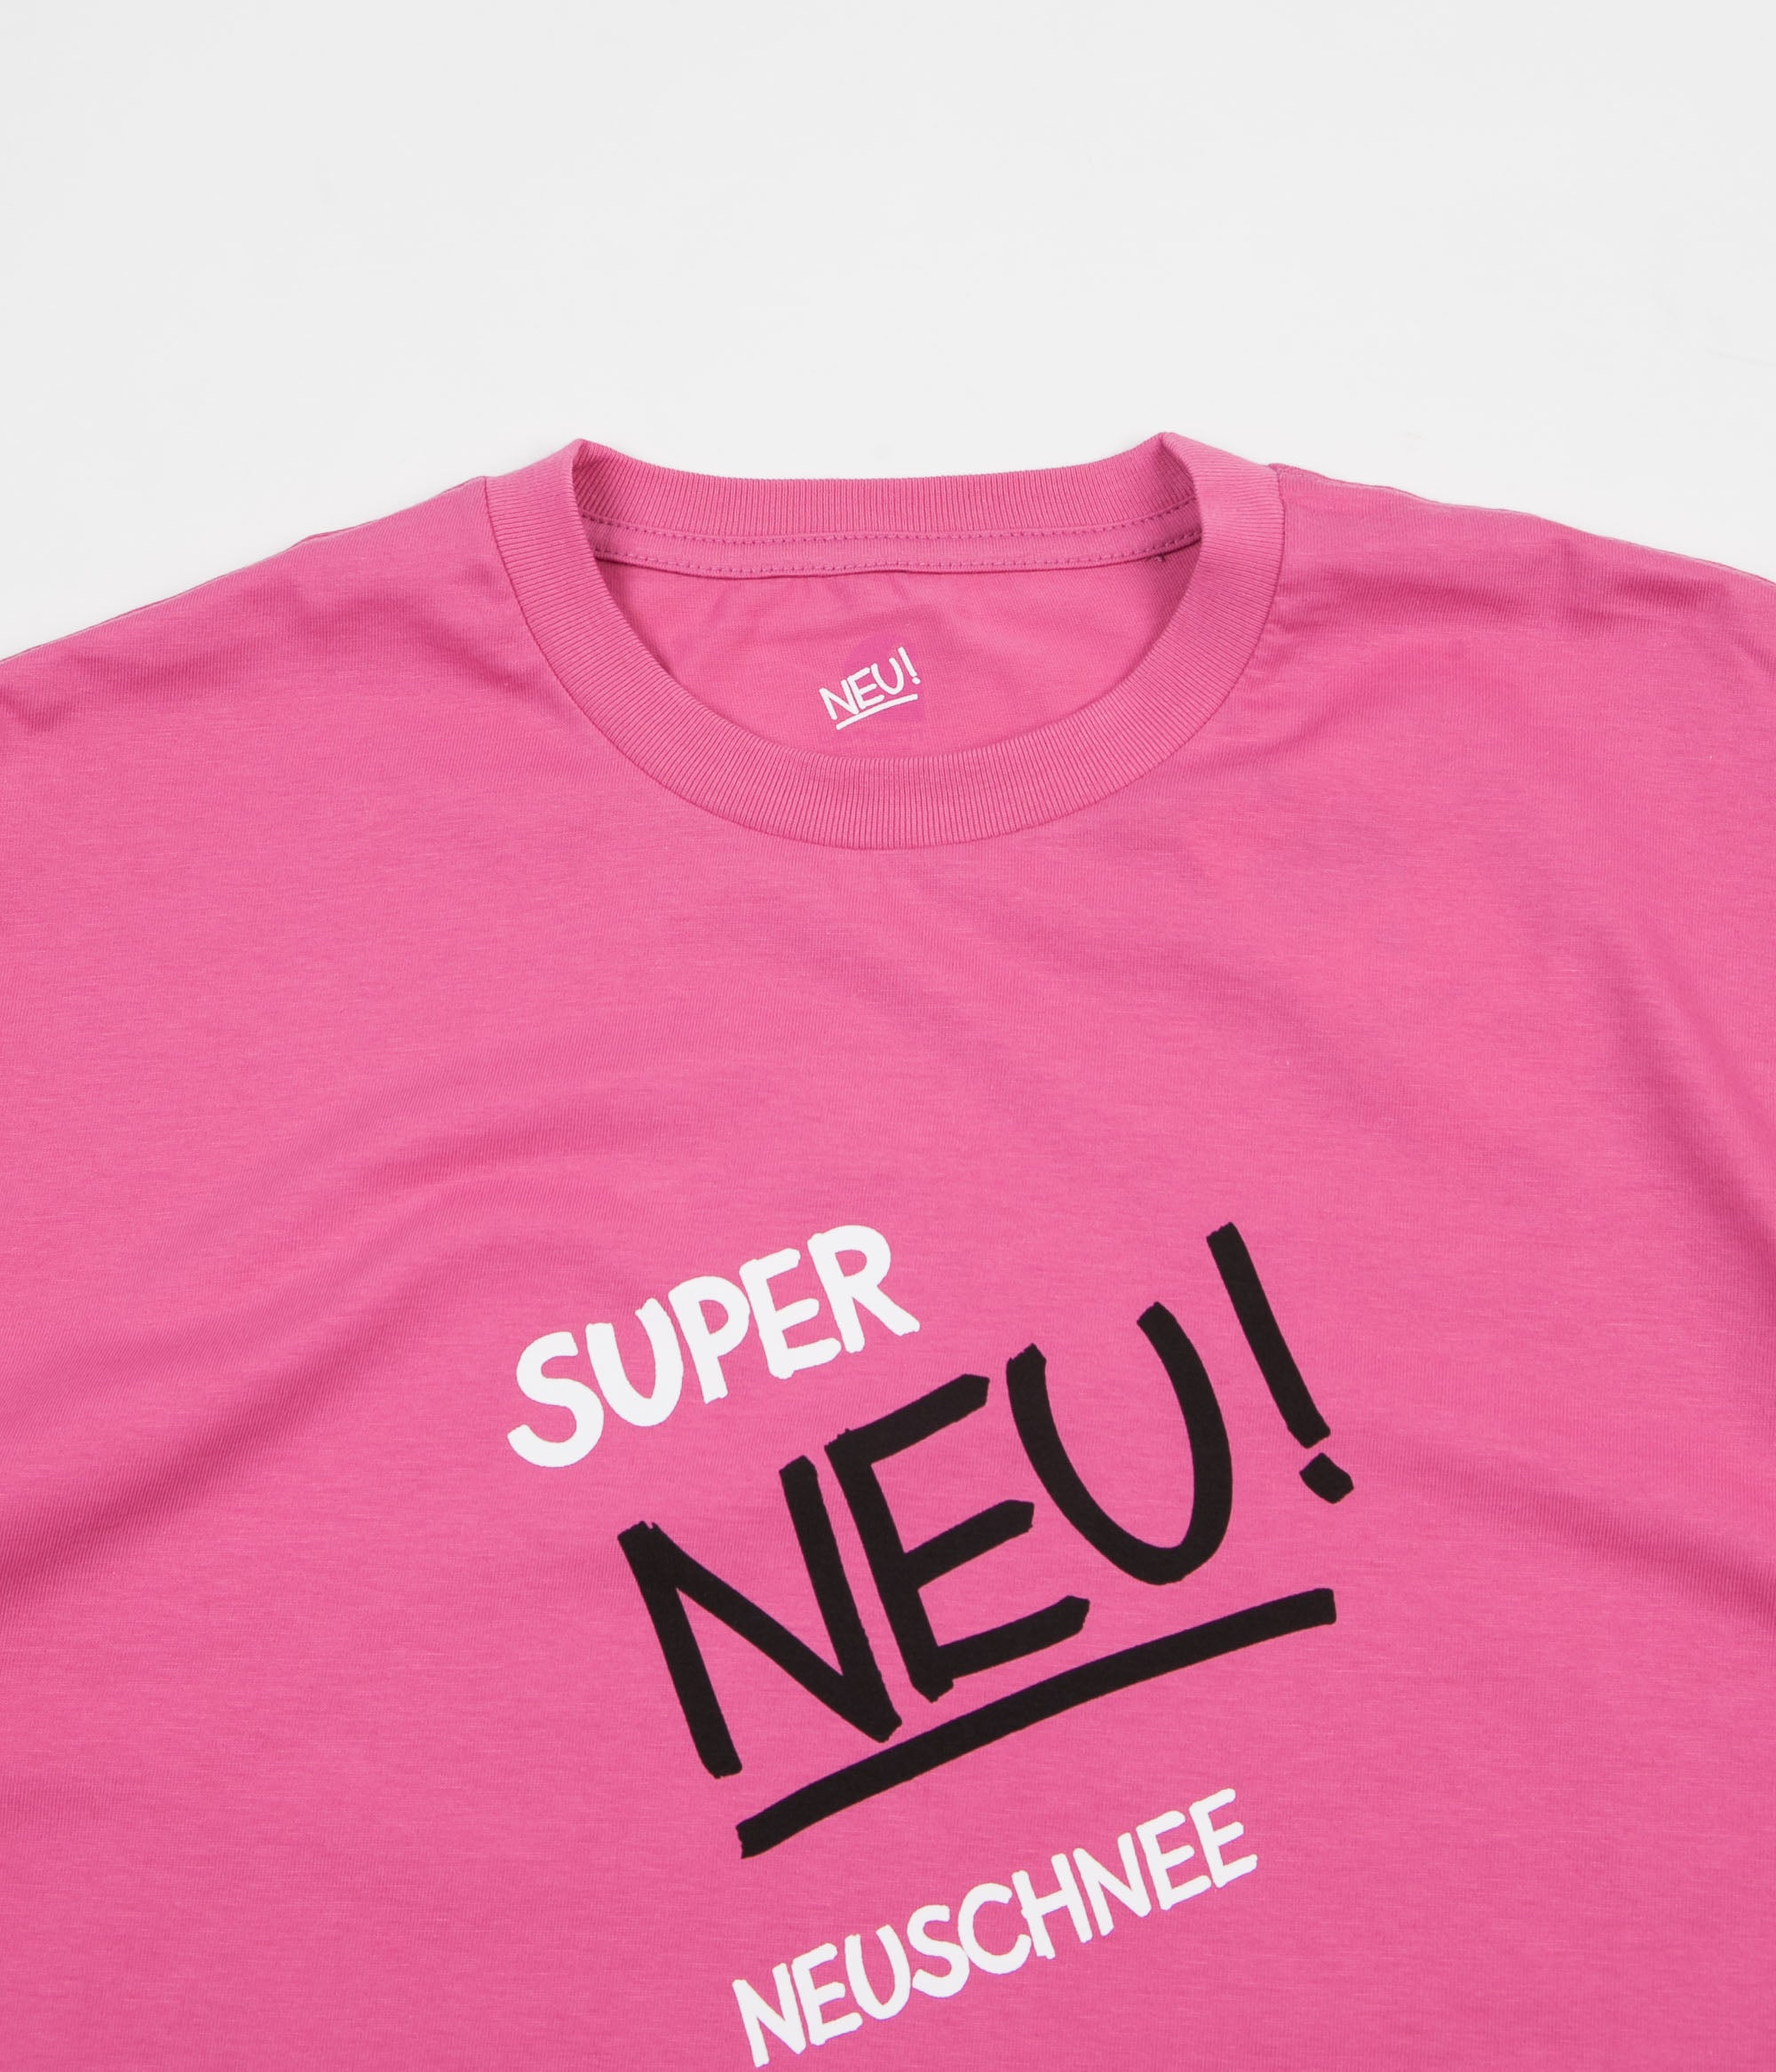 Carhartt x NEU! Super Neuschnee T-Shirt - Wildberry